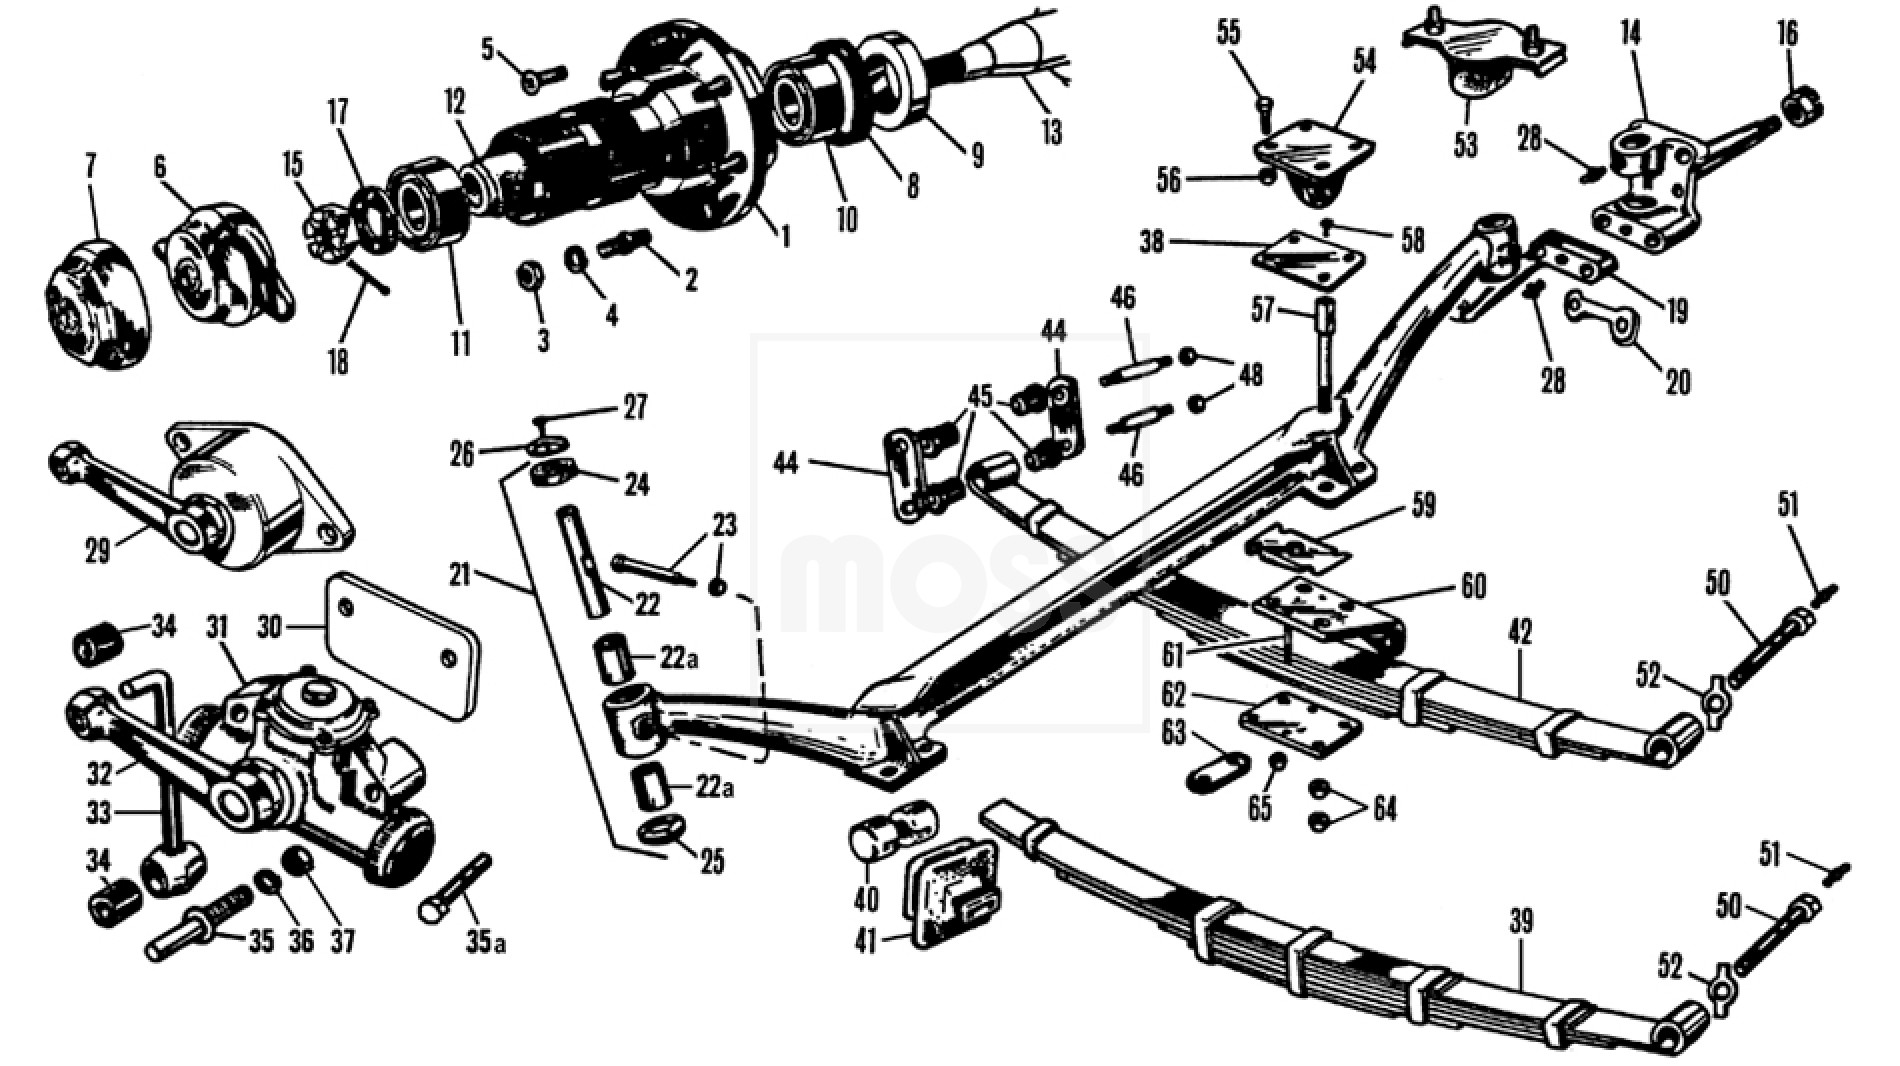 Clutch Bleeding in addition Mg Midget Engine Diagrams moreover Read together with 1972 Mgb Fuel System Diagram moreover Su Carburetor Diagram. on mg mgb fuel line diagram